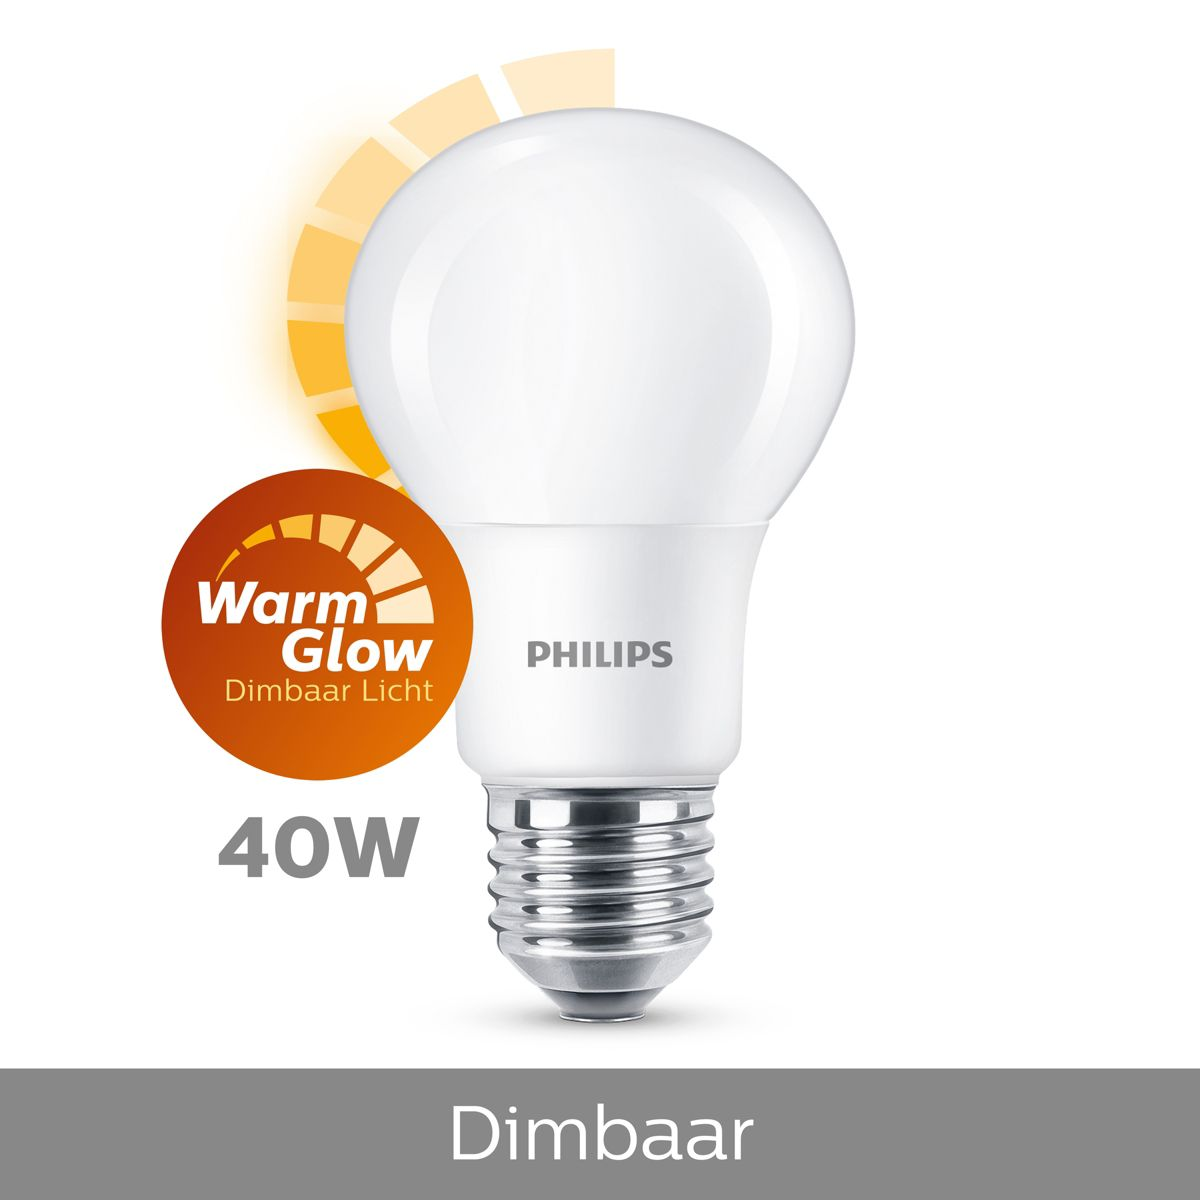 Dimbaar Led Verlichting Led Lamp Dimbaar 8718696706893 Philips